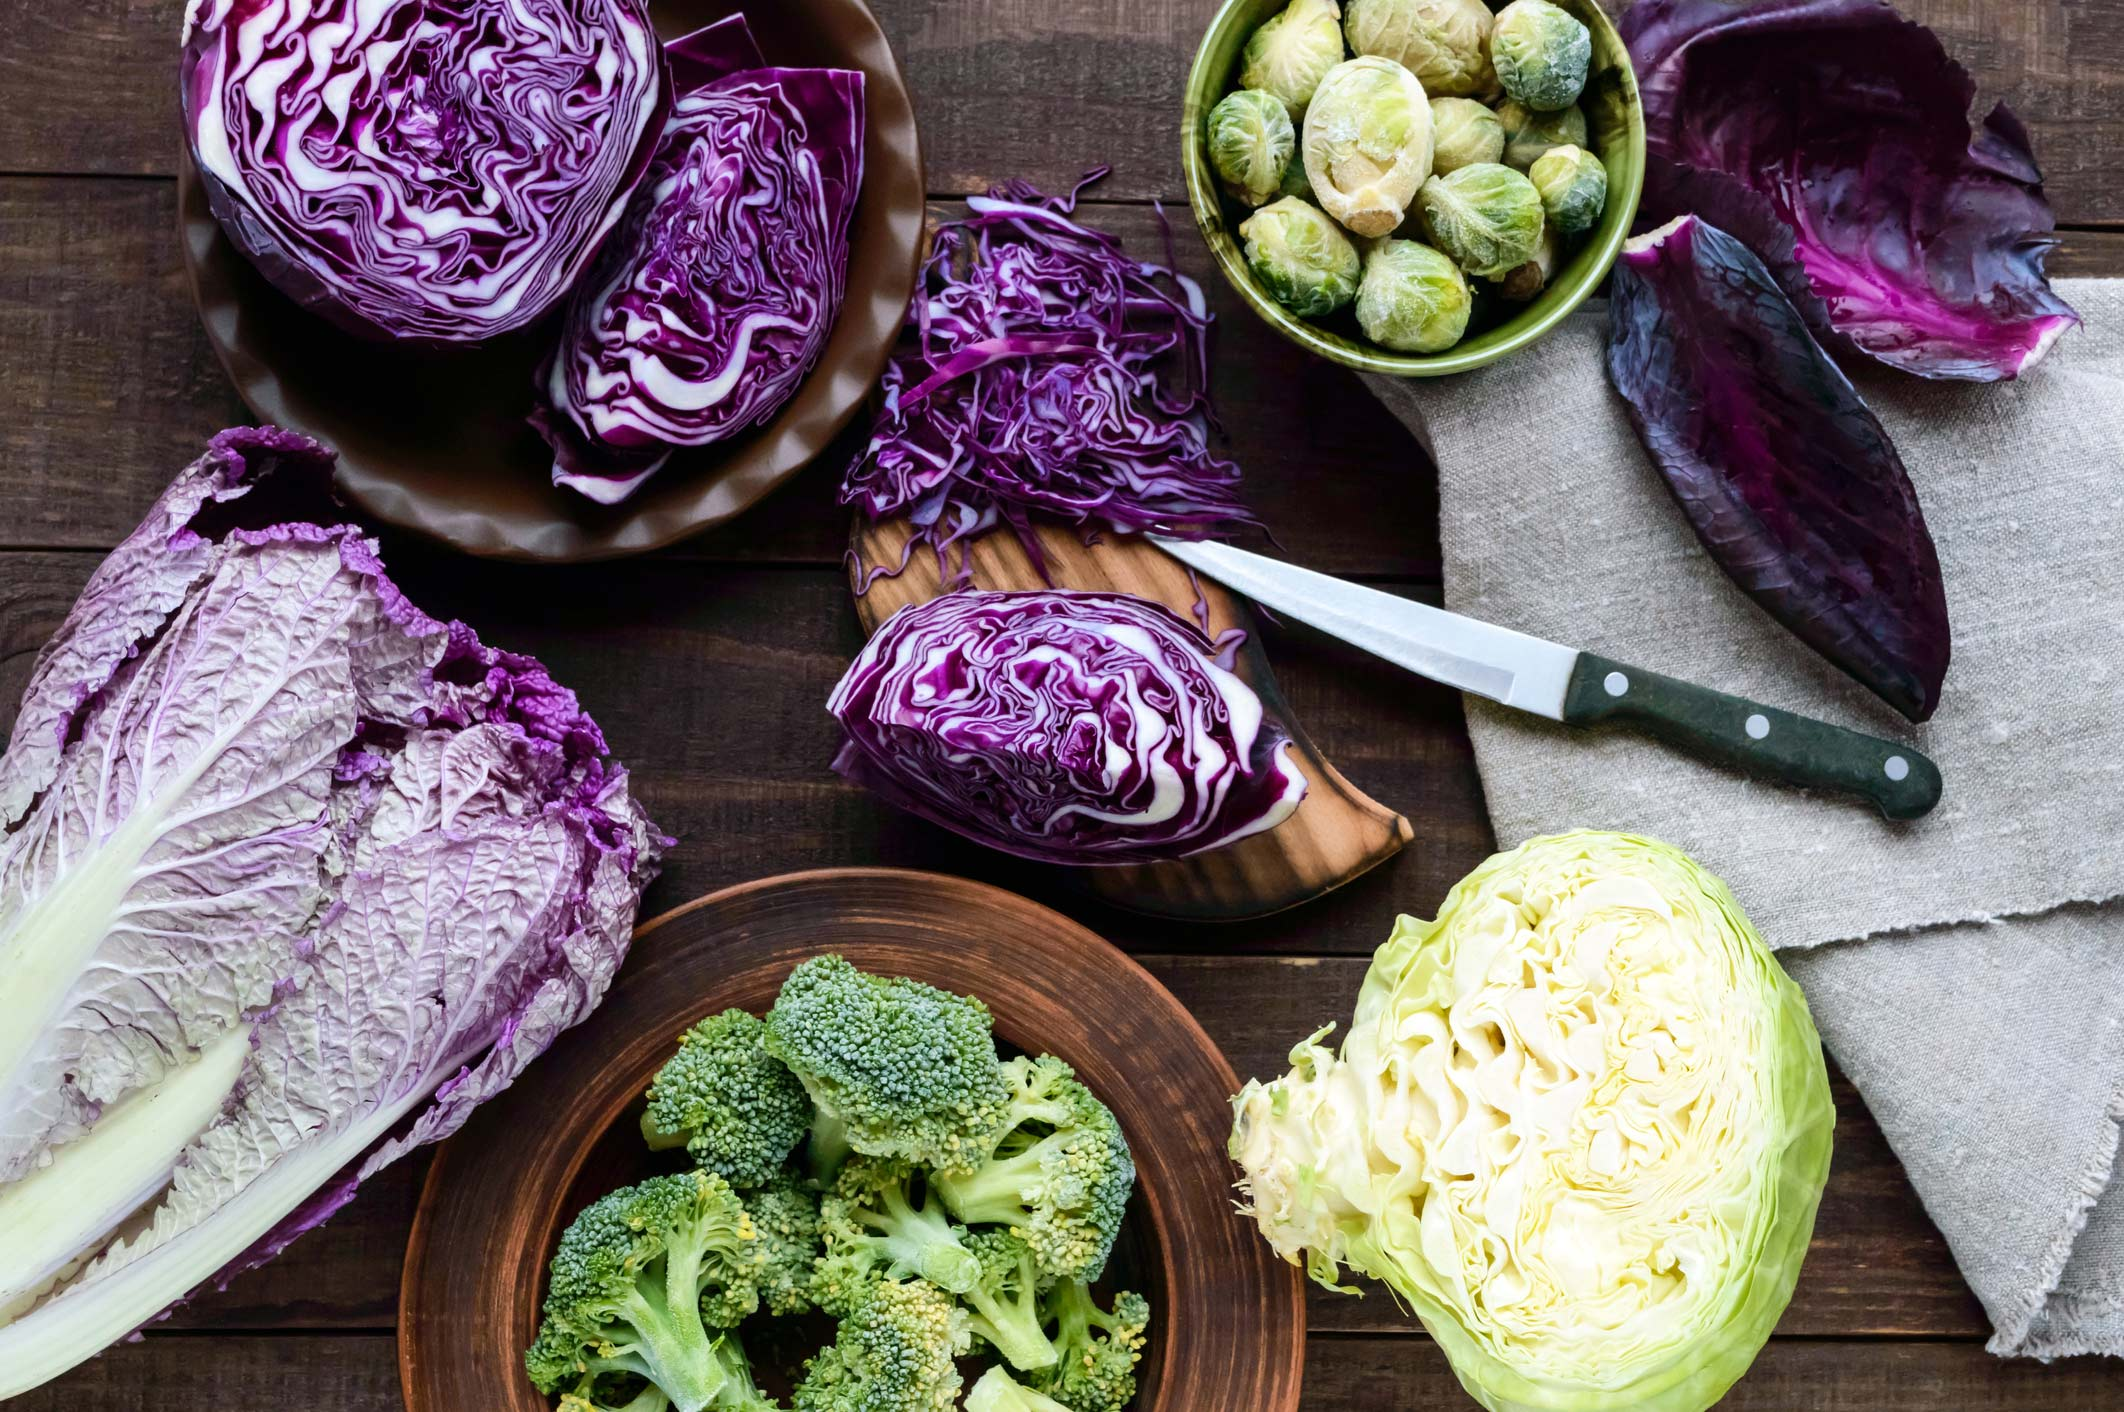 Top detoxifying foods: Cruciferous vegetables